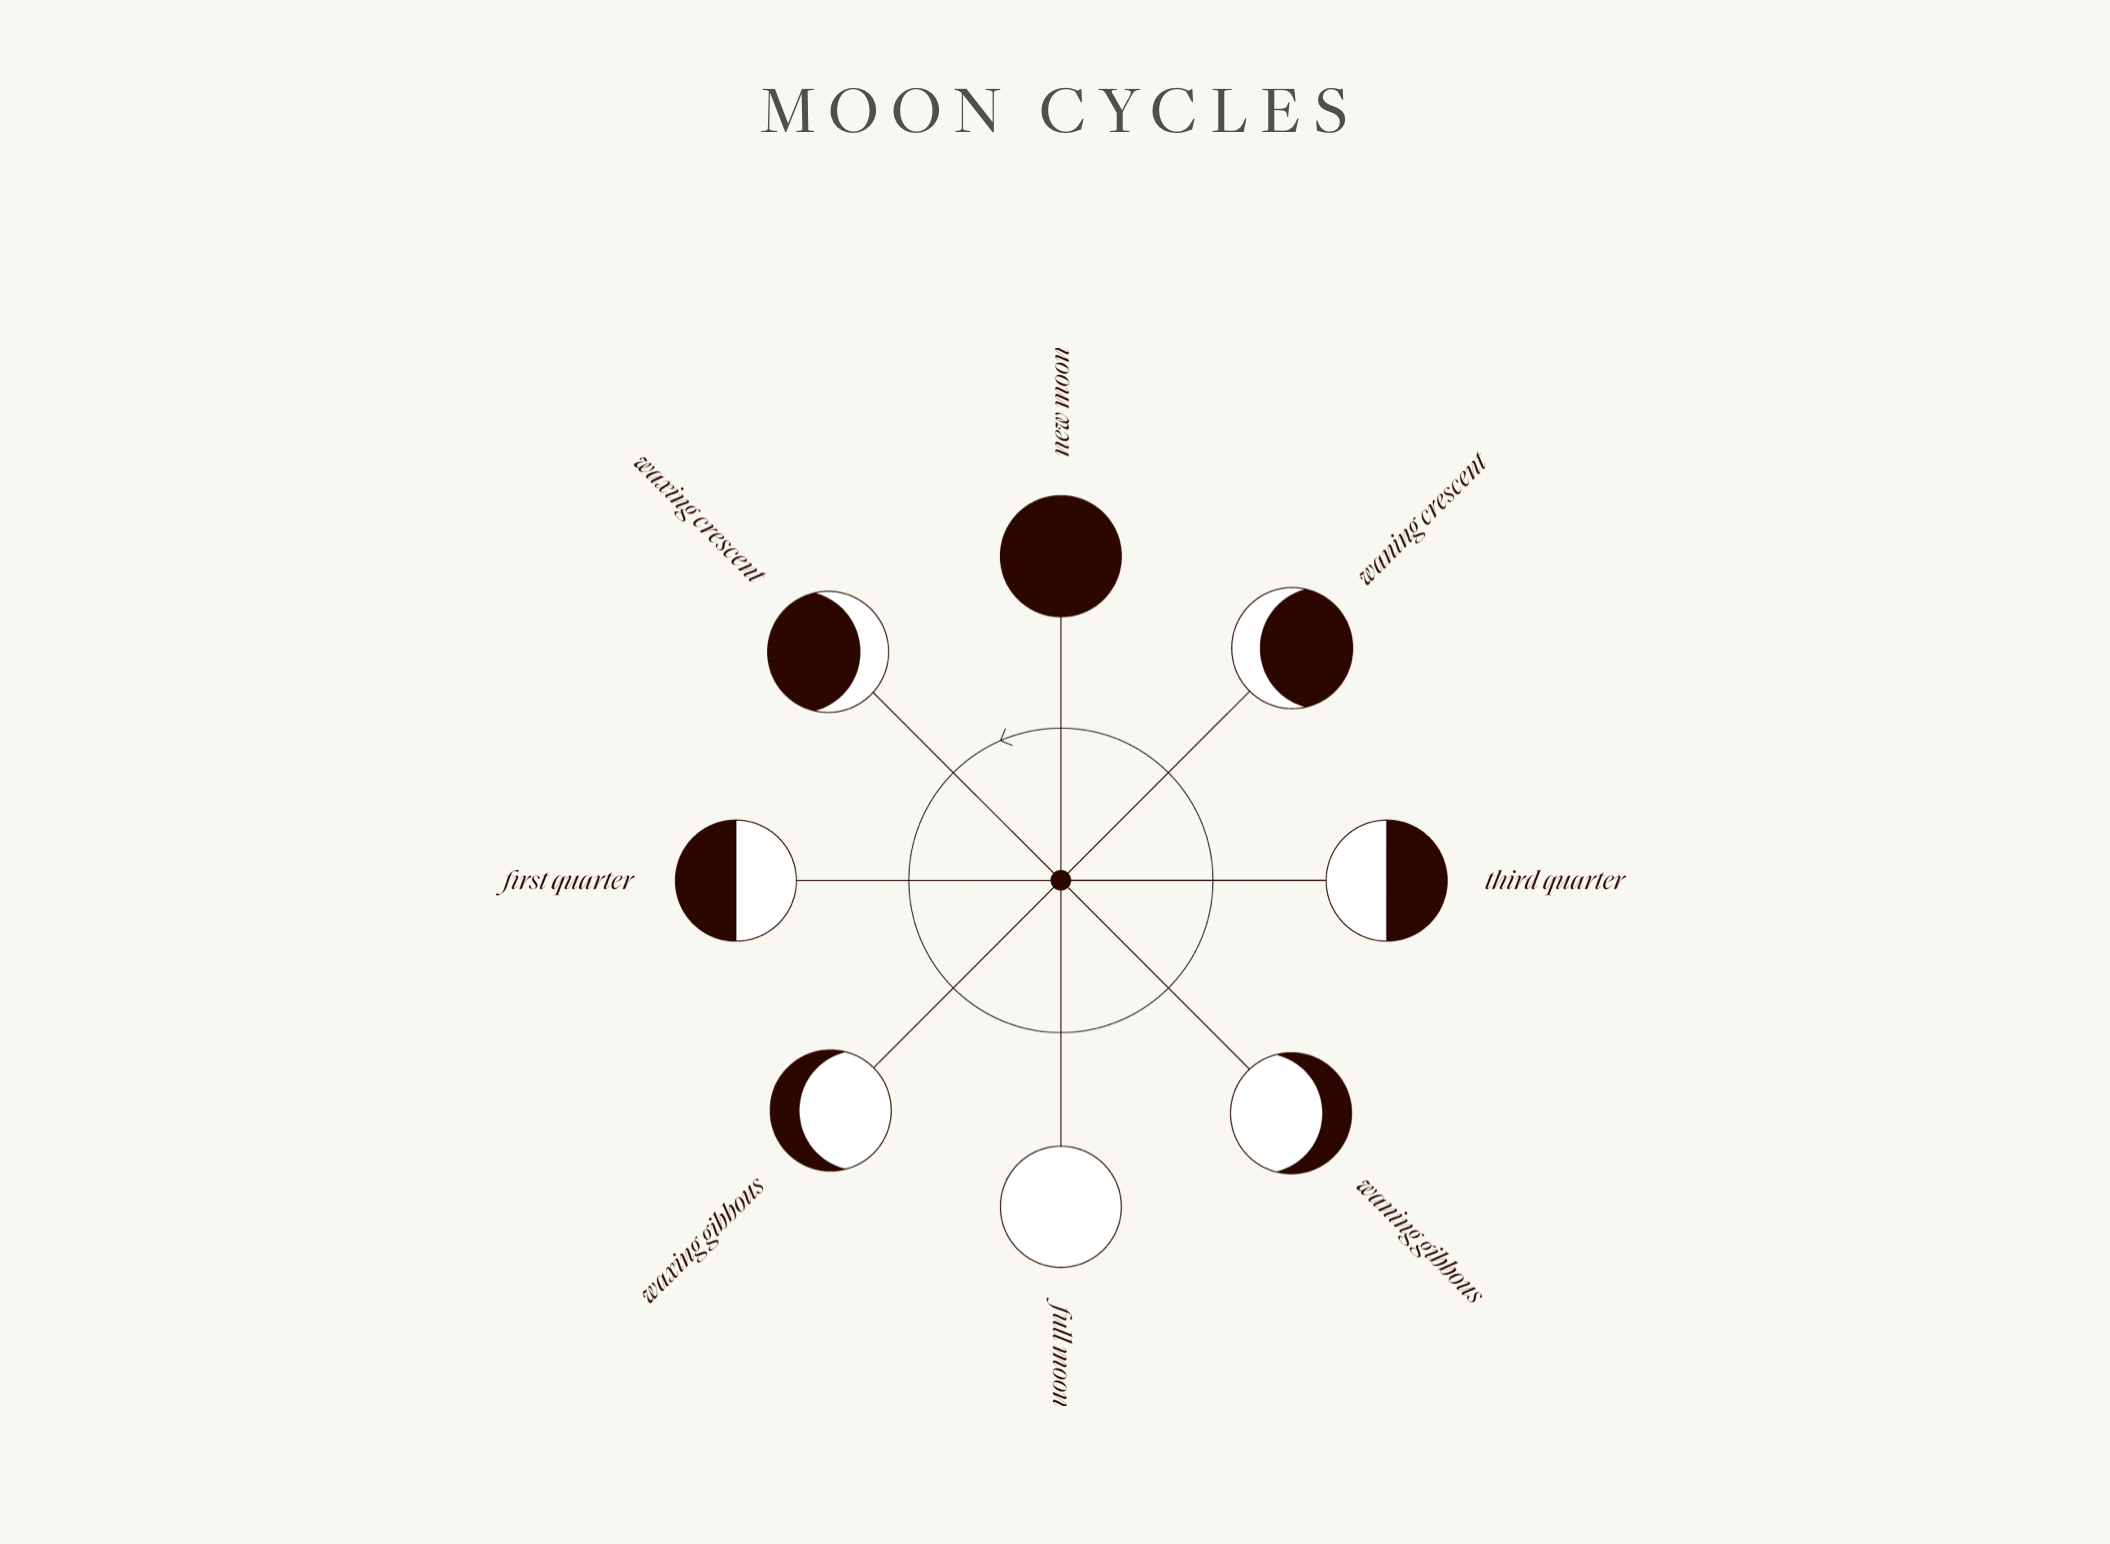 cycle moon ; lune ; nouvelle lune ; new moon ;